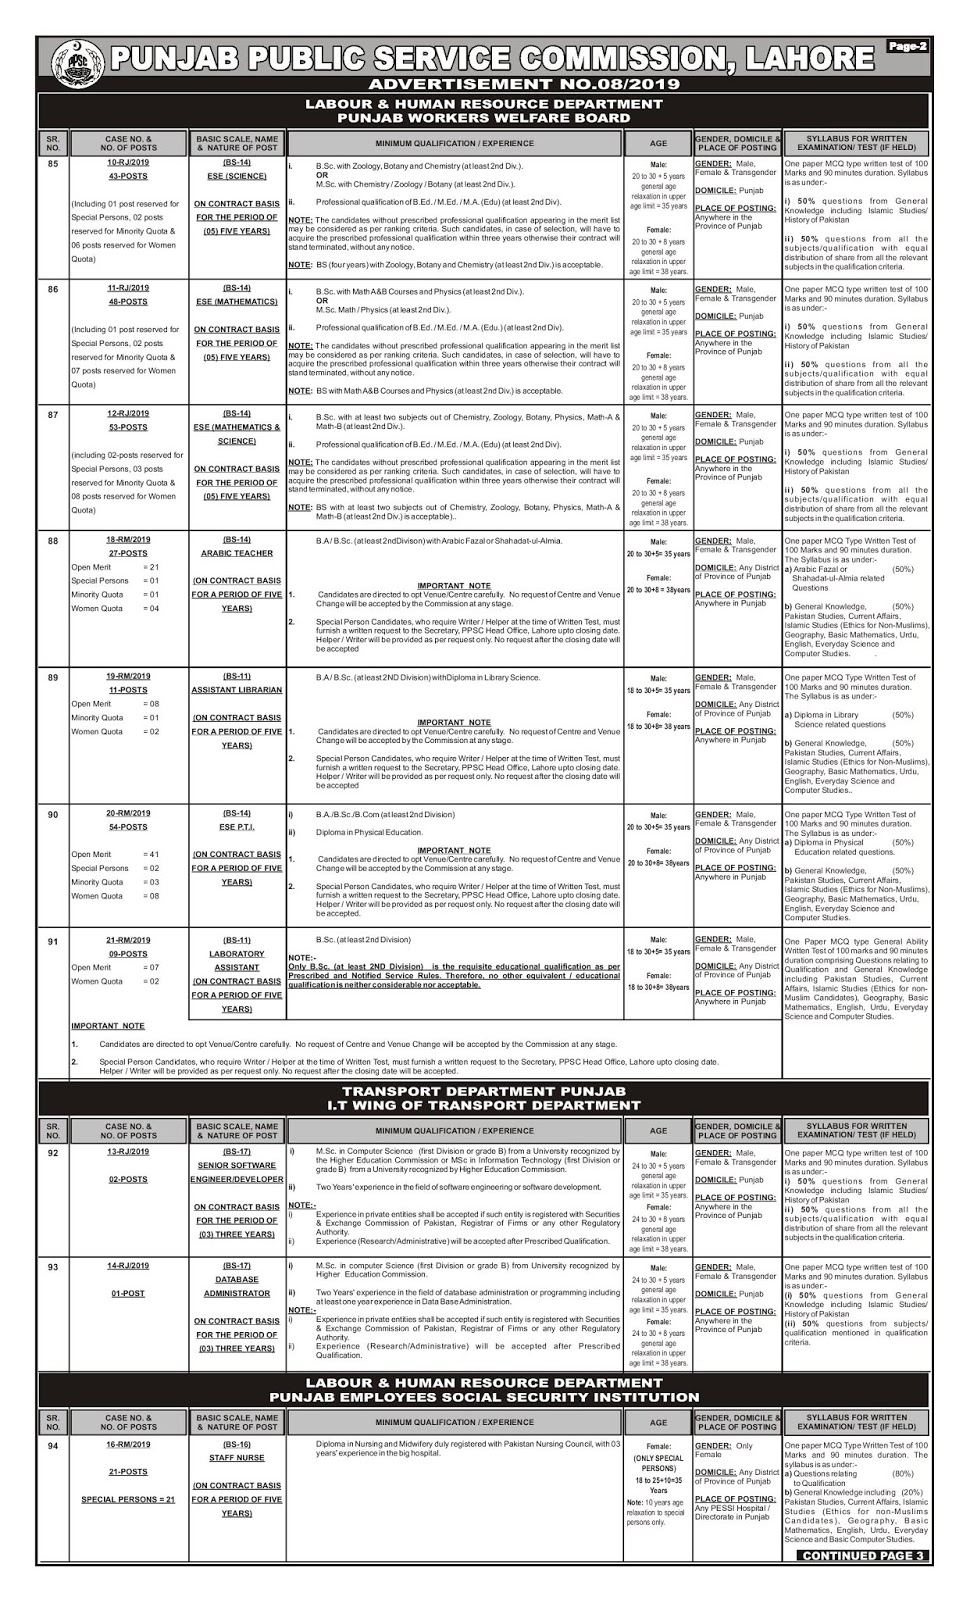 Latest Jobs Educators (Teachers) PPSC March 2019 And Other 1000+|